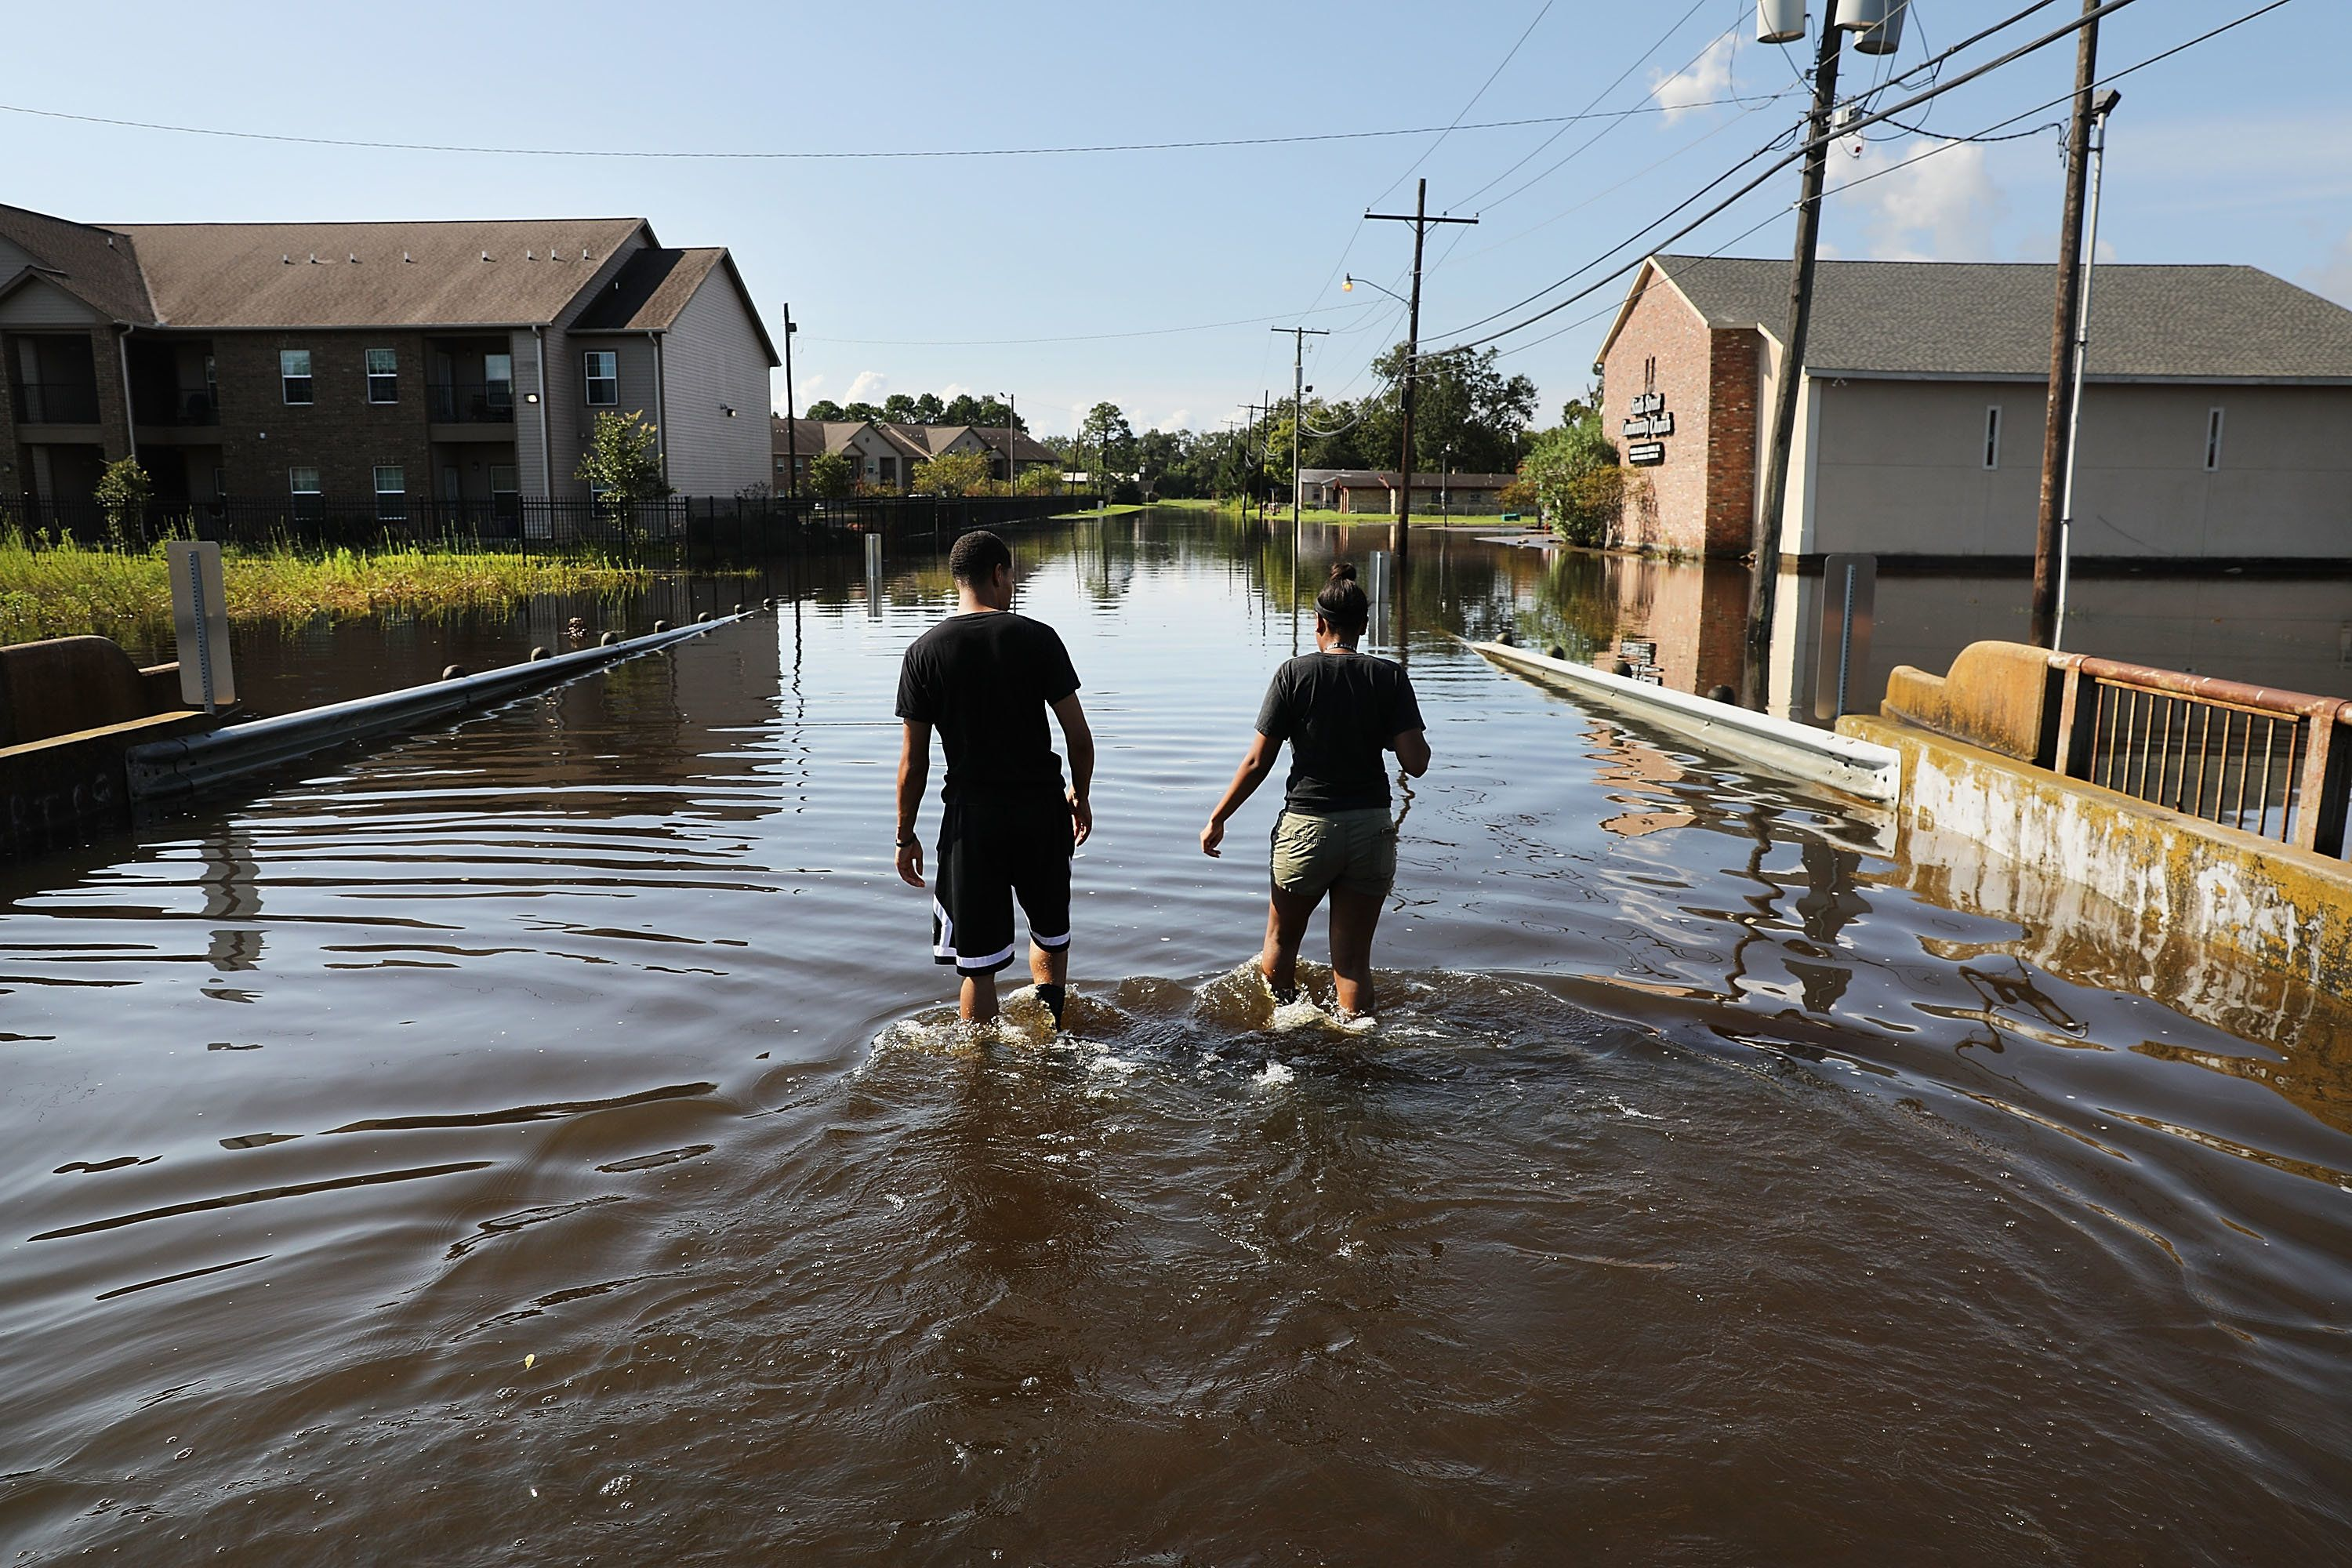 ORANGE, TX - SEPTEMBER 05: A couple walk through their flooded neighborhood as Texas slowly moves toward recovery from the devastation of Hurricane Harvey on September 5, 2017 in Orange, Texas. Almost a week after Hurricane Harvey ravaged parts of the state, some neighborhoods still remained flooded and without electricity. While downtown Houston is returning to business, thousands continue to live in shelters, hotels and other accommodations as they contemplate their future.  (Photo by Spencer Platt/Getty Images)